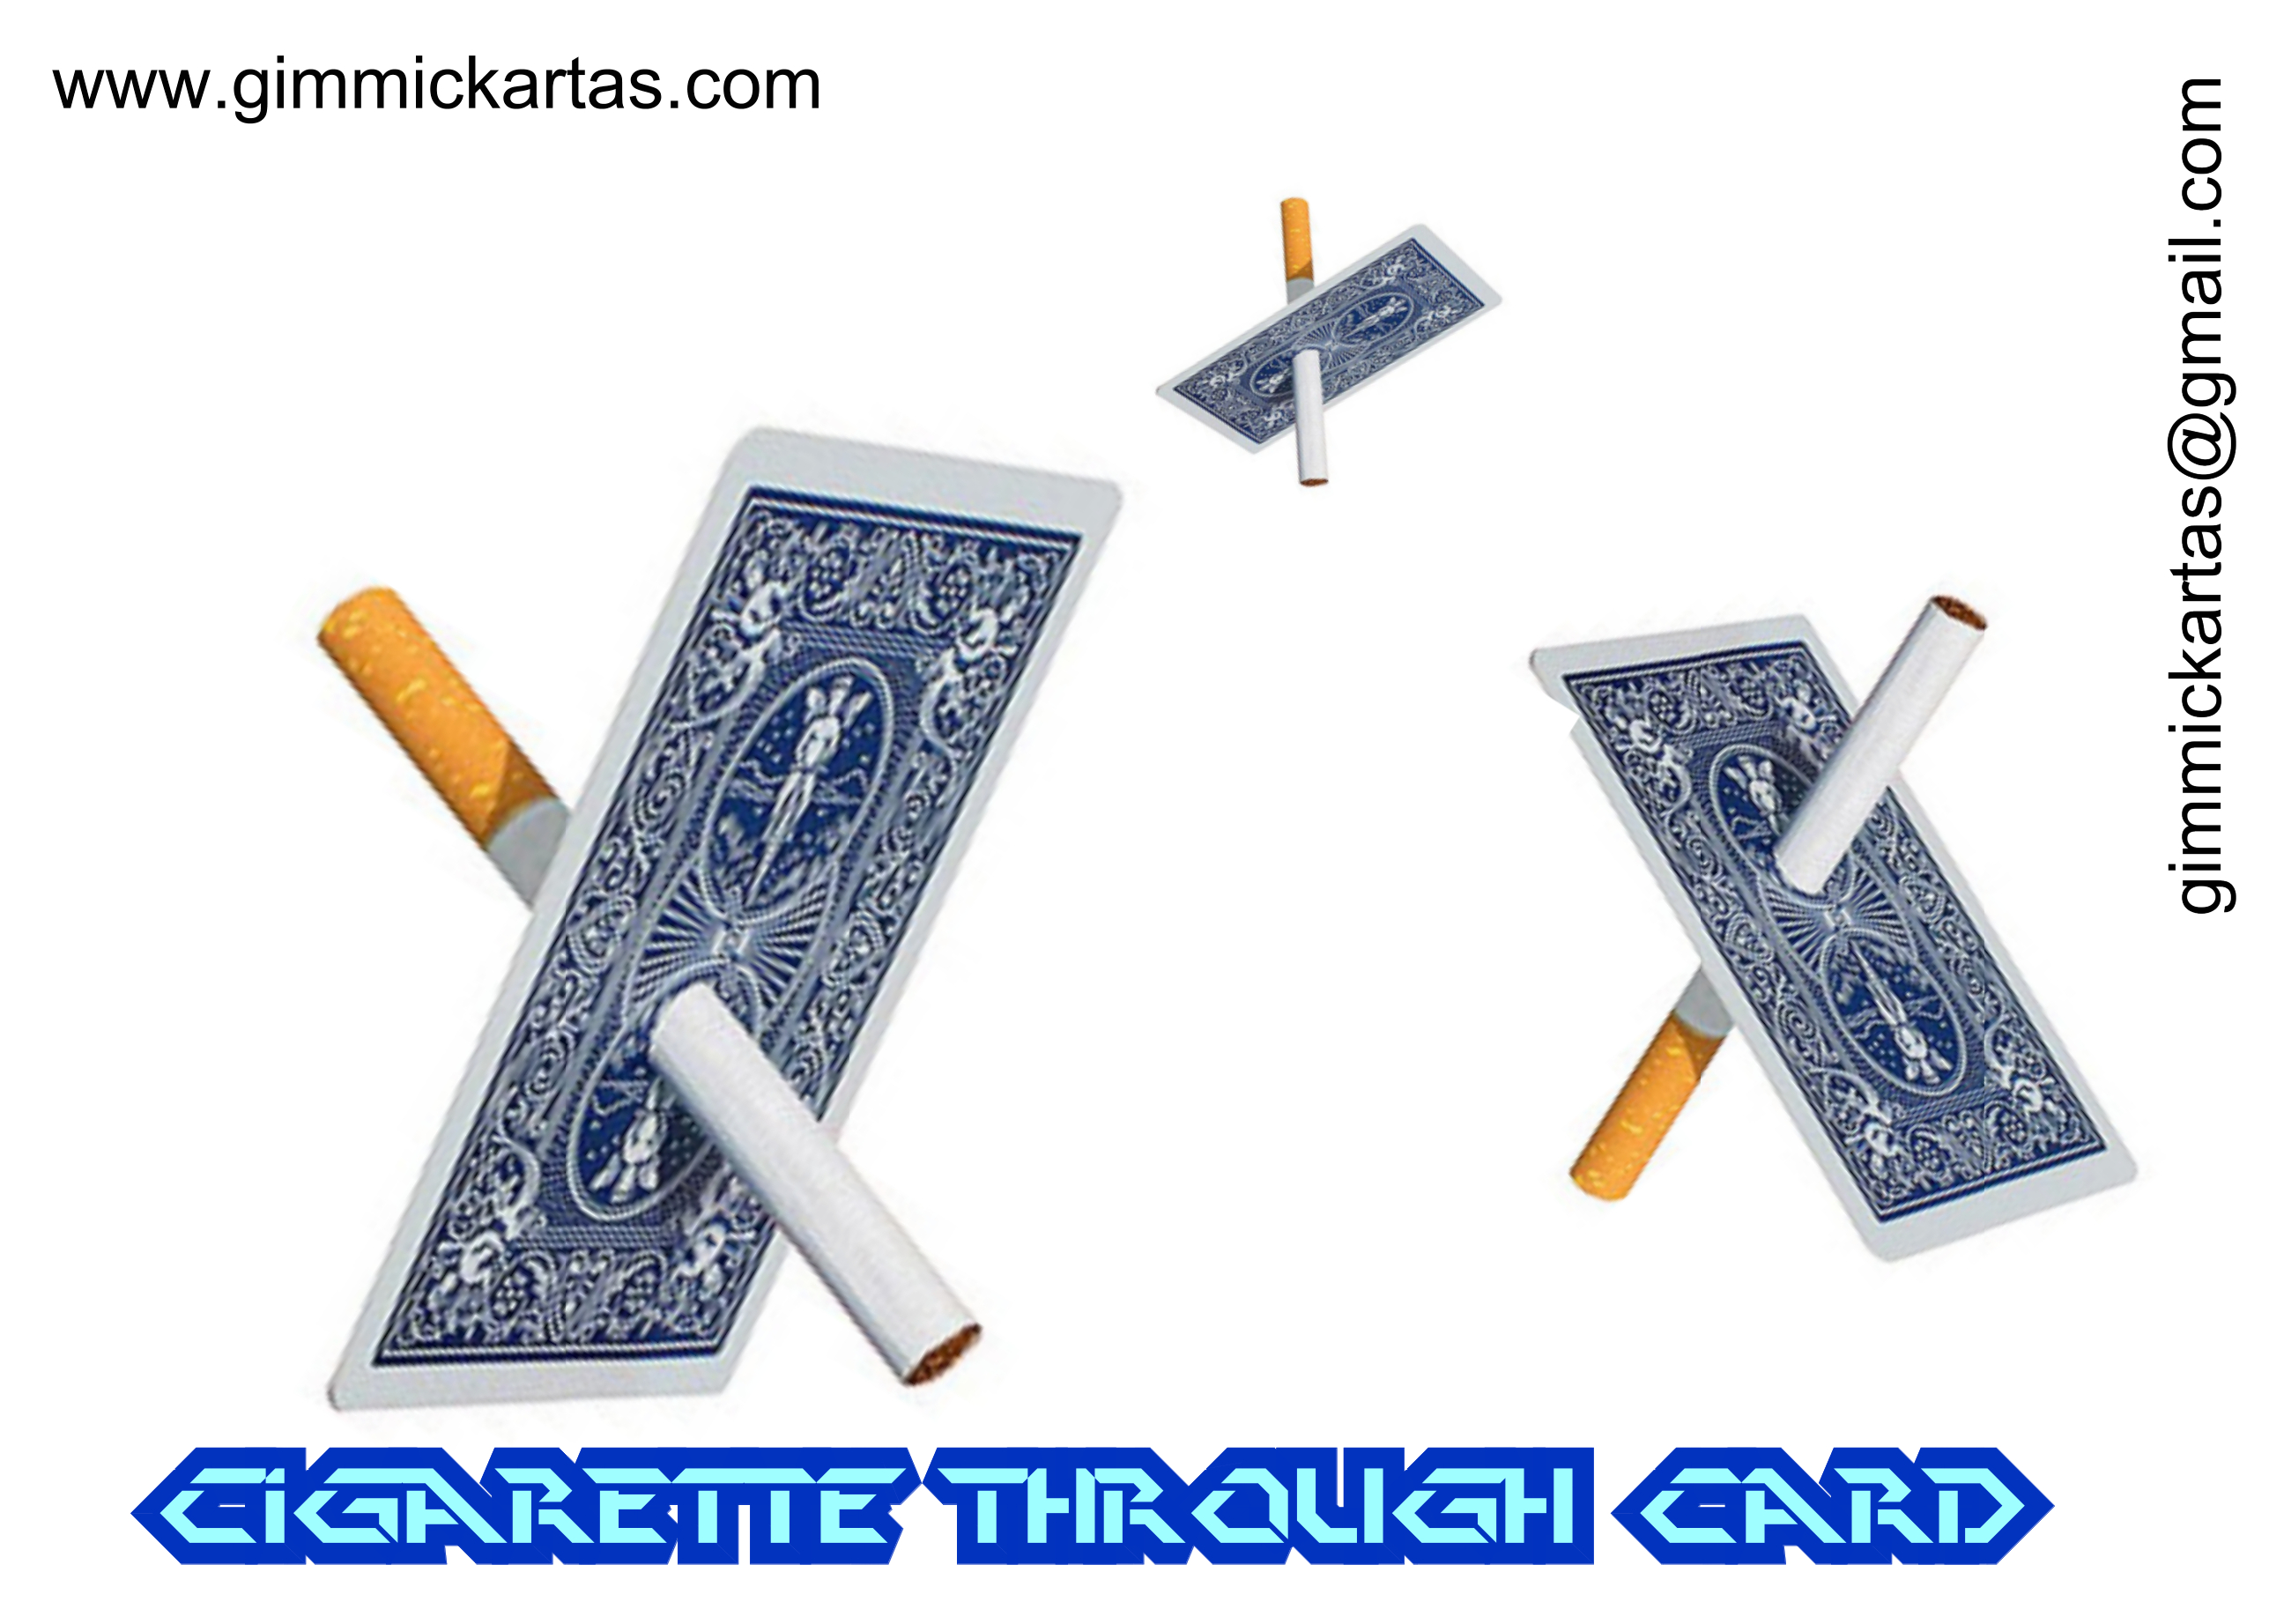 cigarrette-through-card-2575x1843 | ilusionat.com